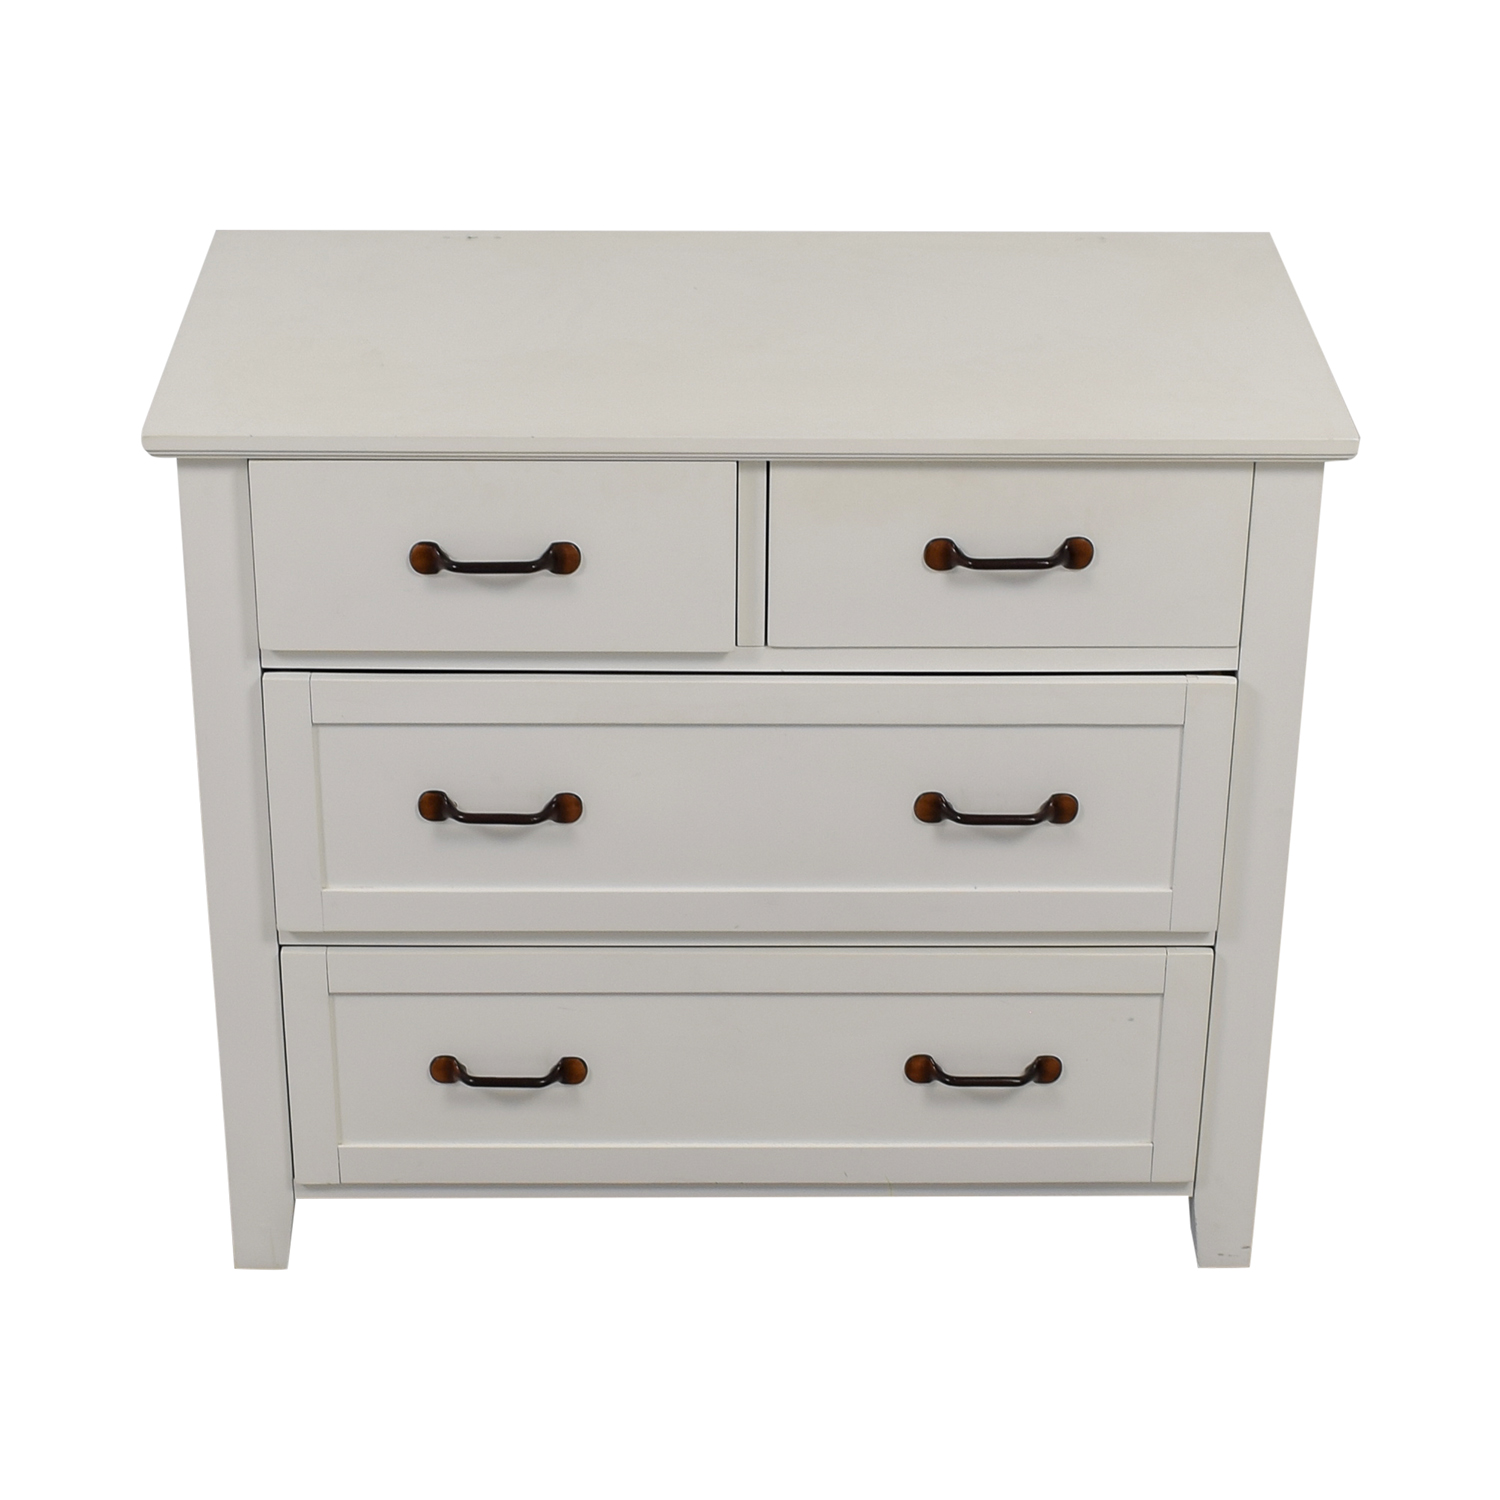 Pottery Barn Pottery Barn Stratton White Four-Drawer Dresser price